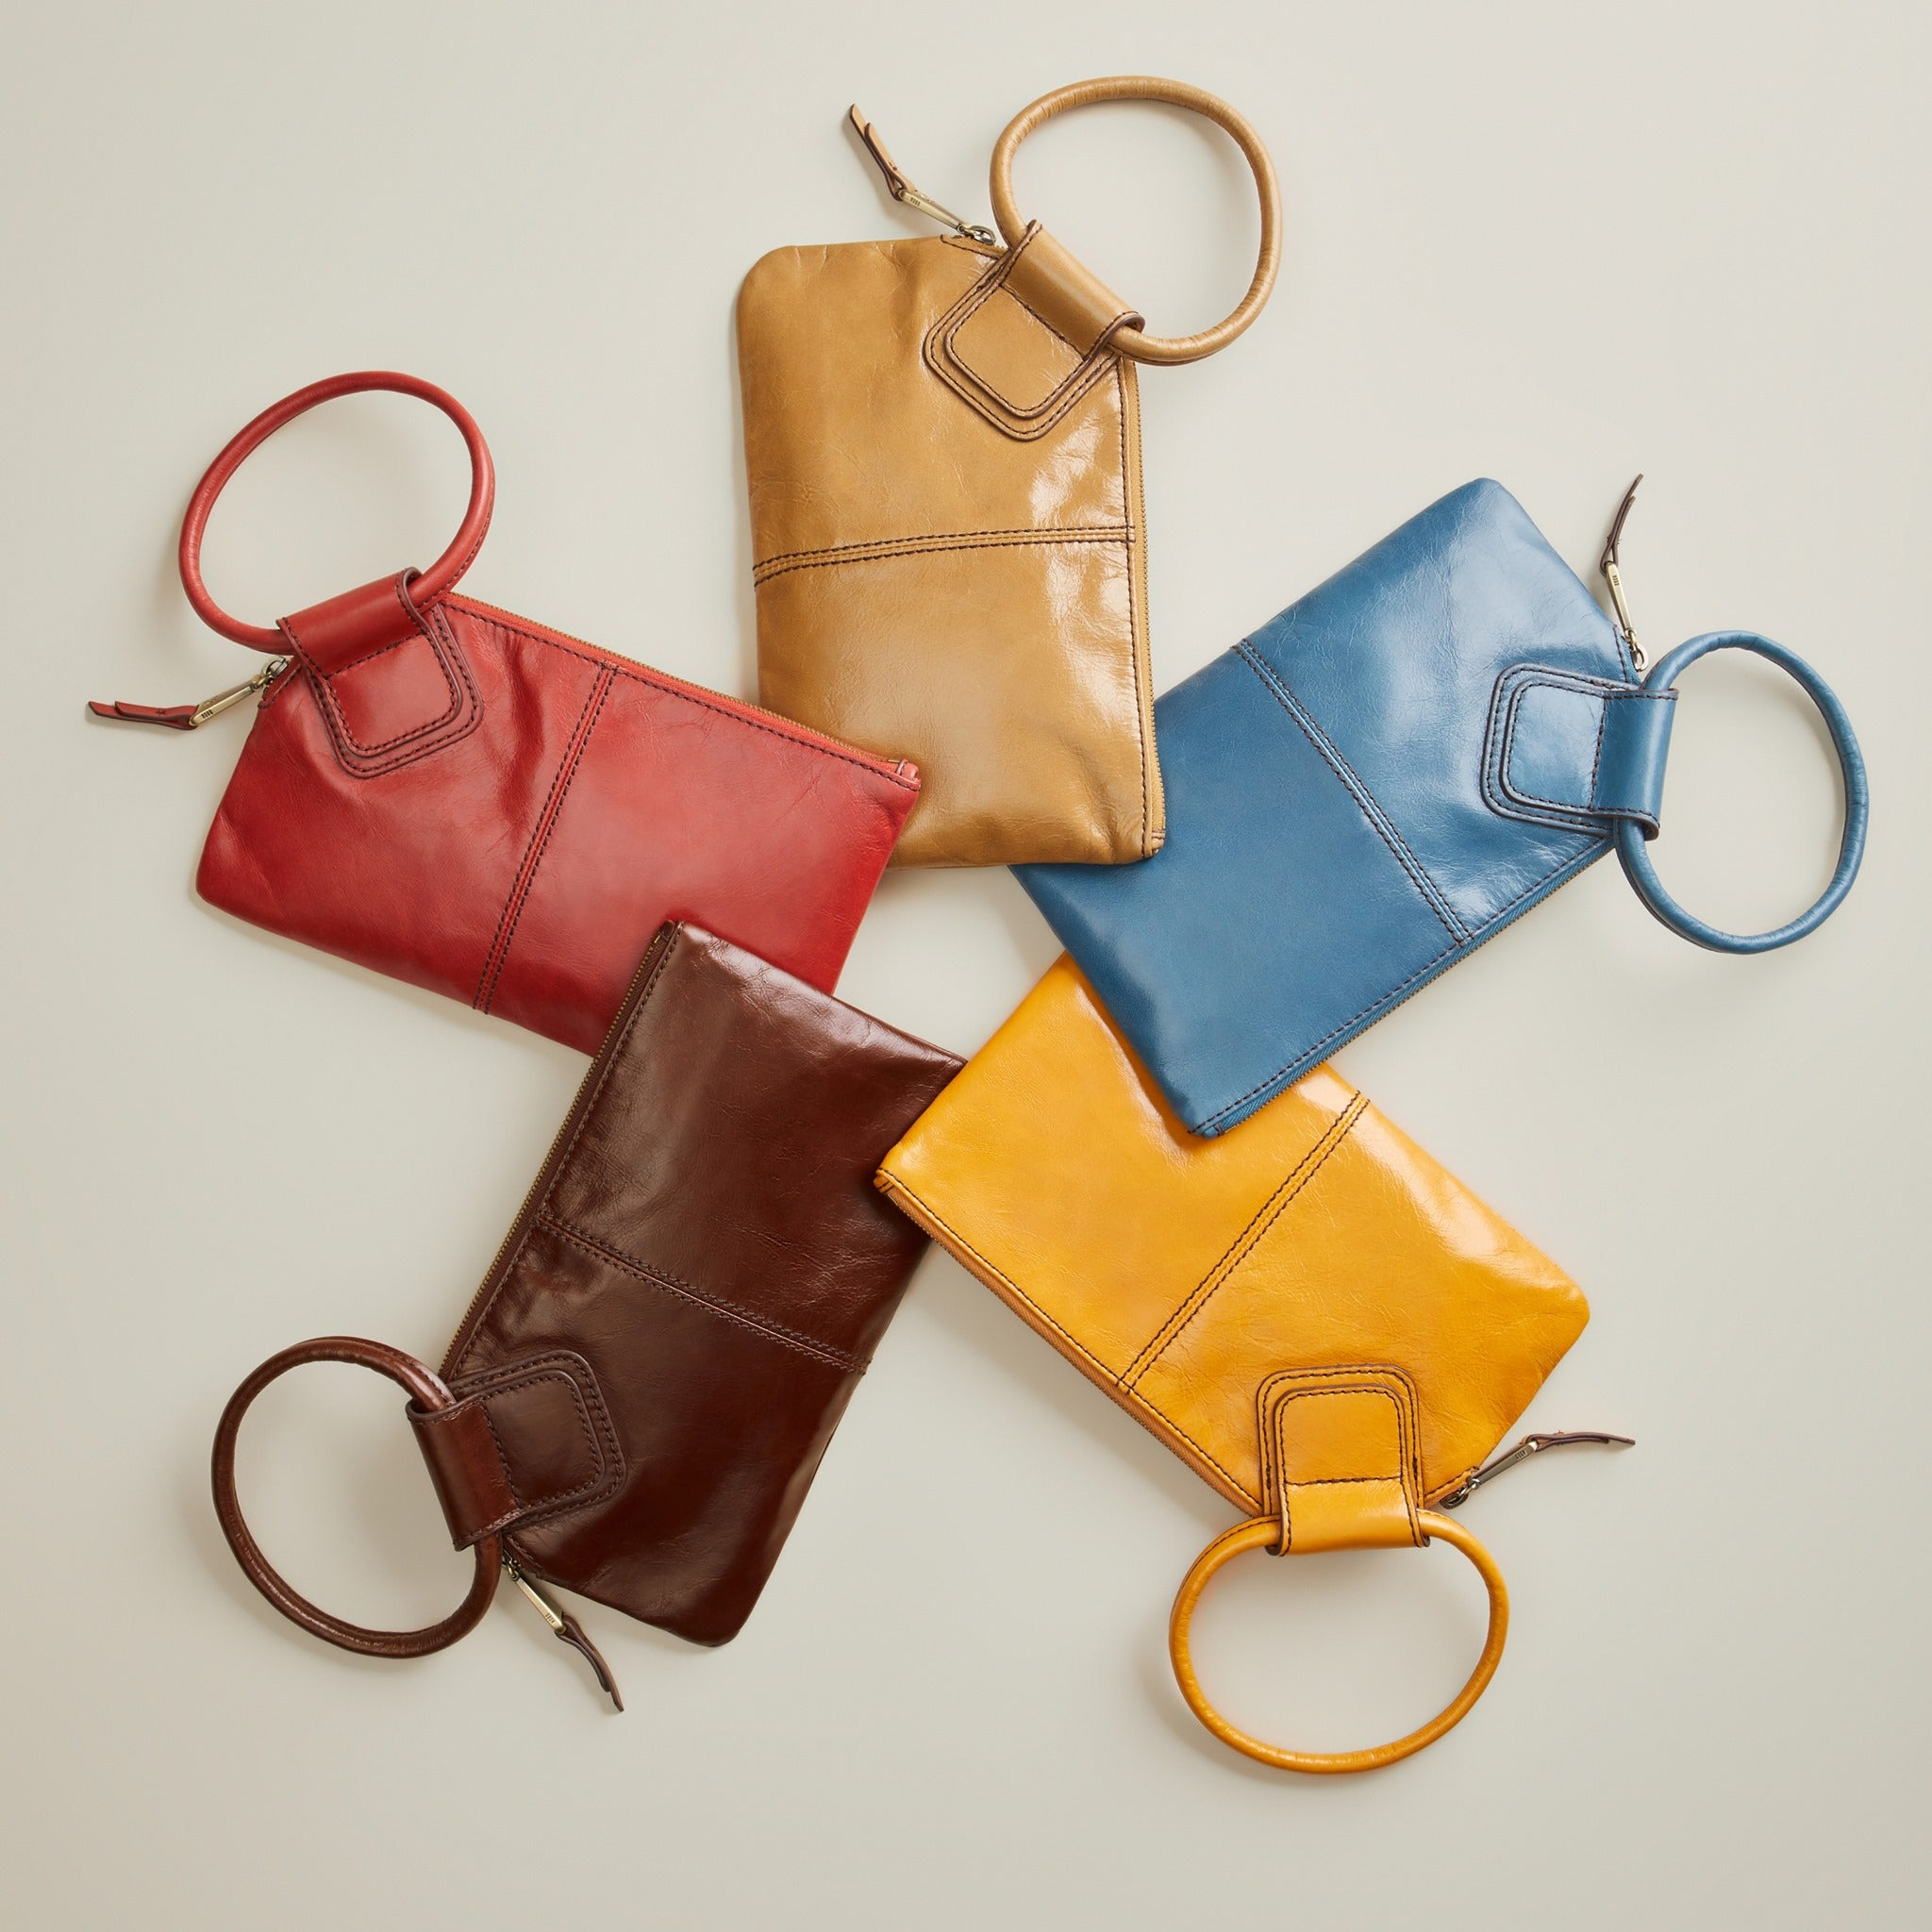 Hobo Handbags fine leather and colors